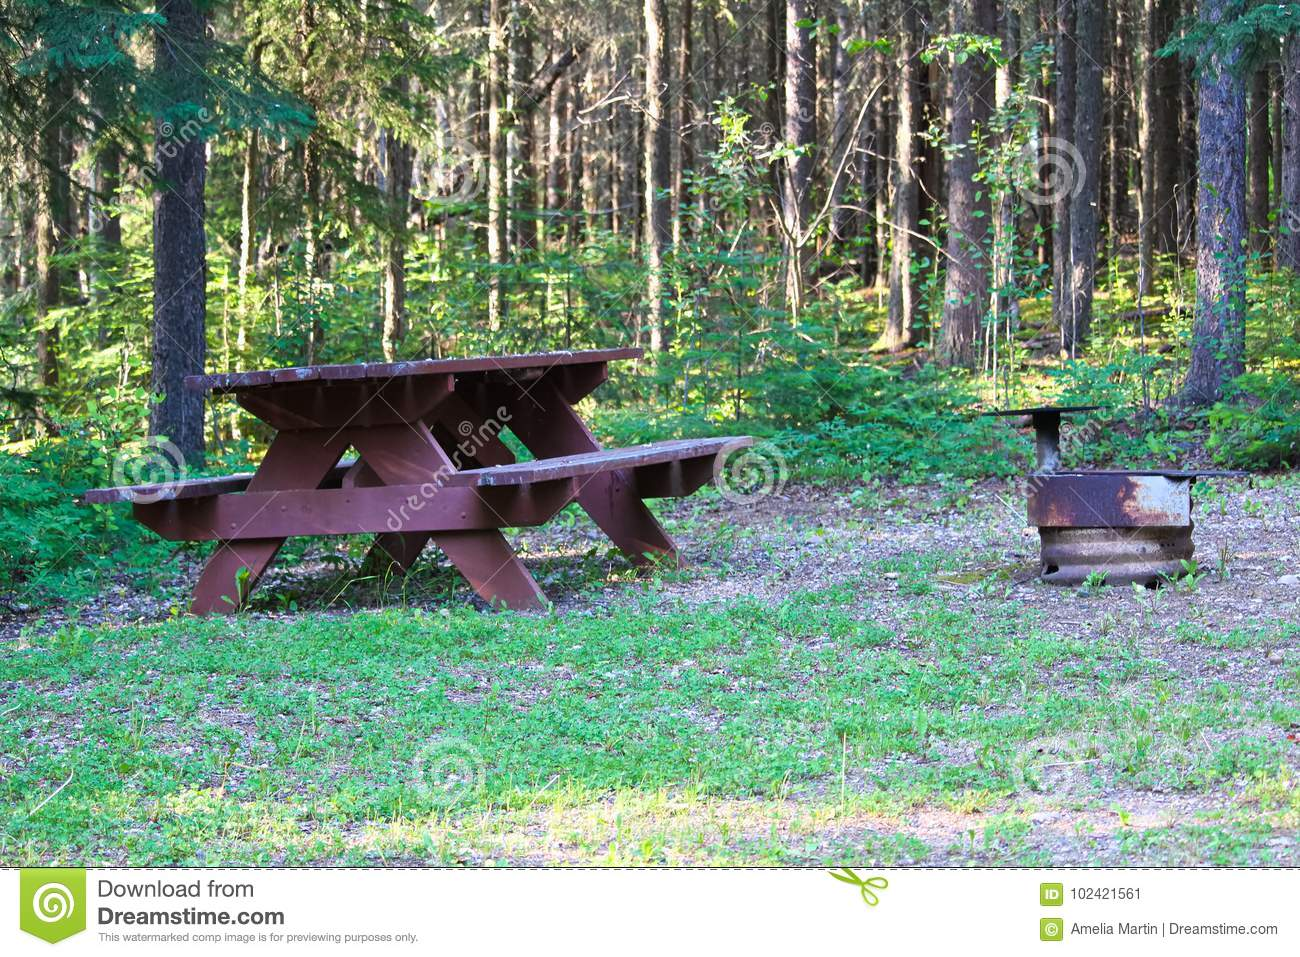 A Picnic Table And Fire Ring At A Campsite Stock Image Image Of - Fire picnic table